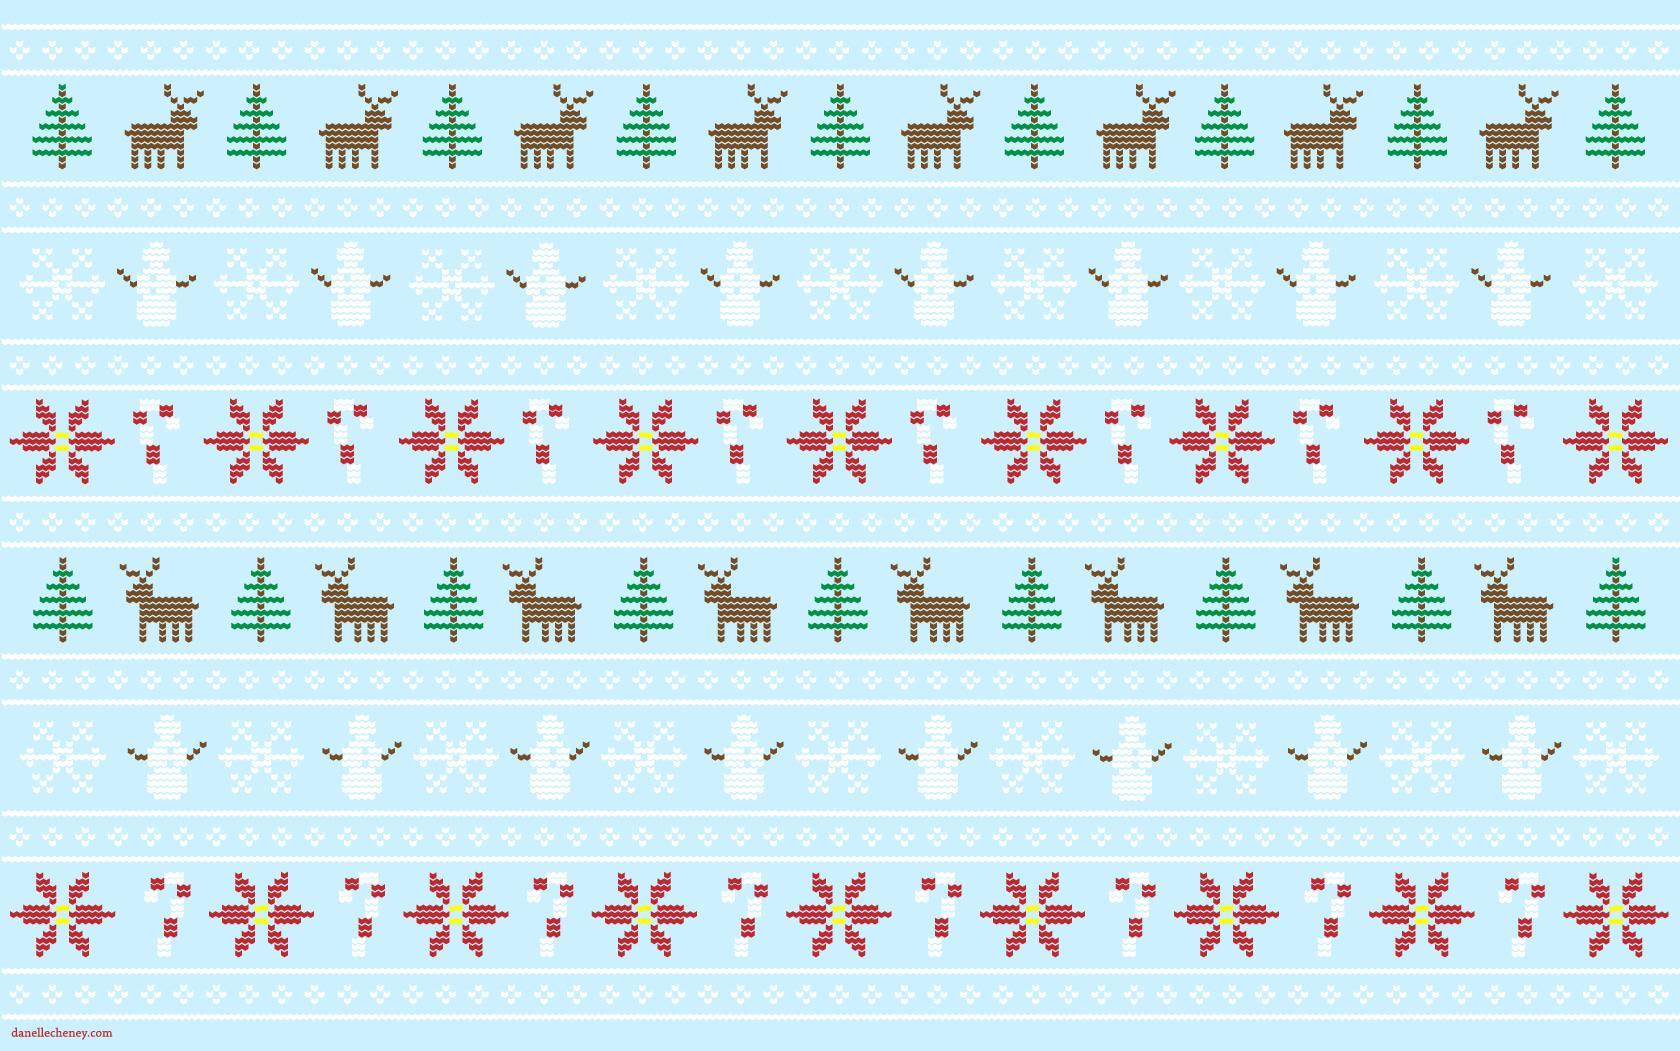 assorted-color baubles on white surface christmas sweater zoom background